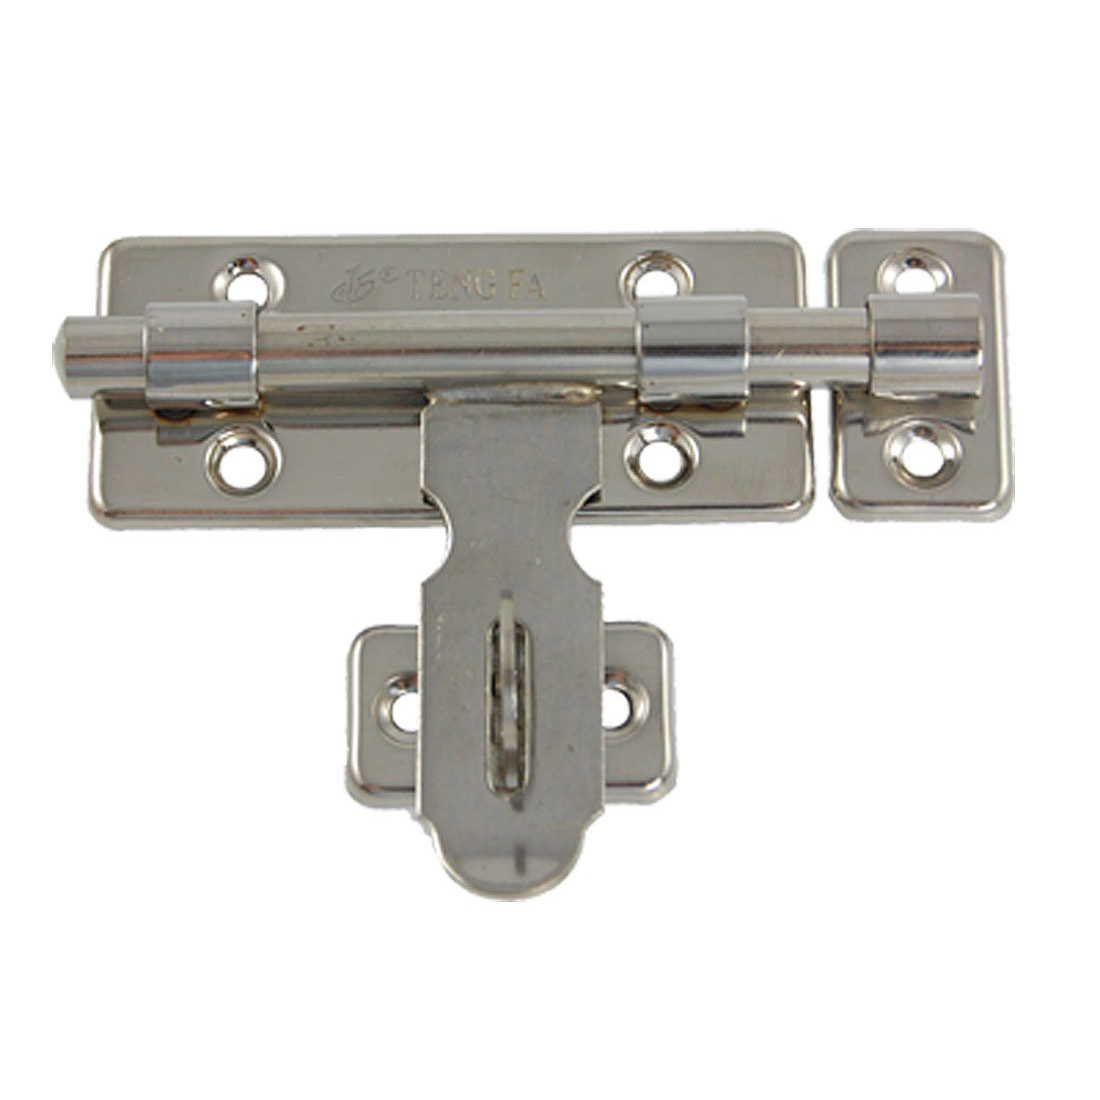 Le Meilleur In Stock Hardware Door Lock Barrel Bolt Latch Padlock Ce Mois Ci